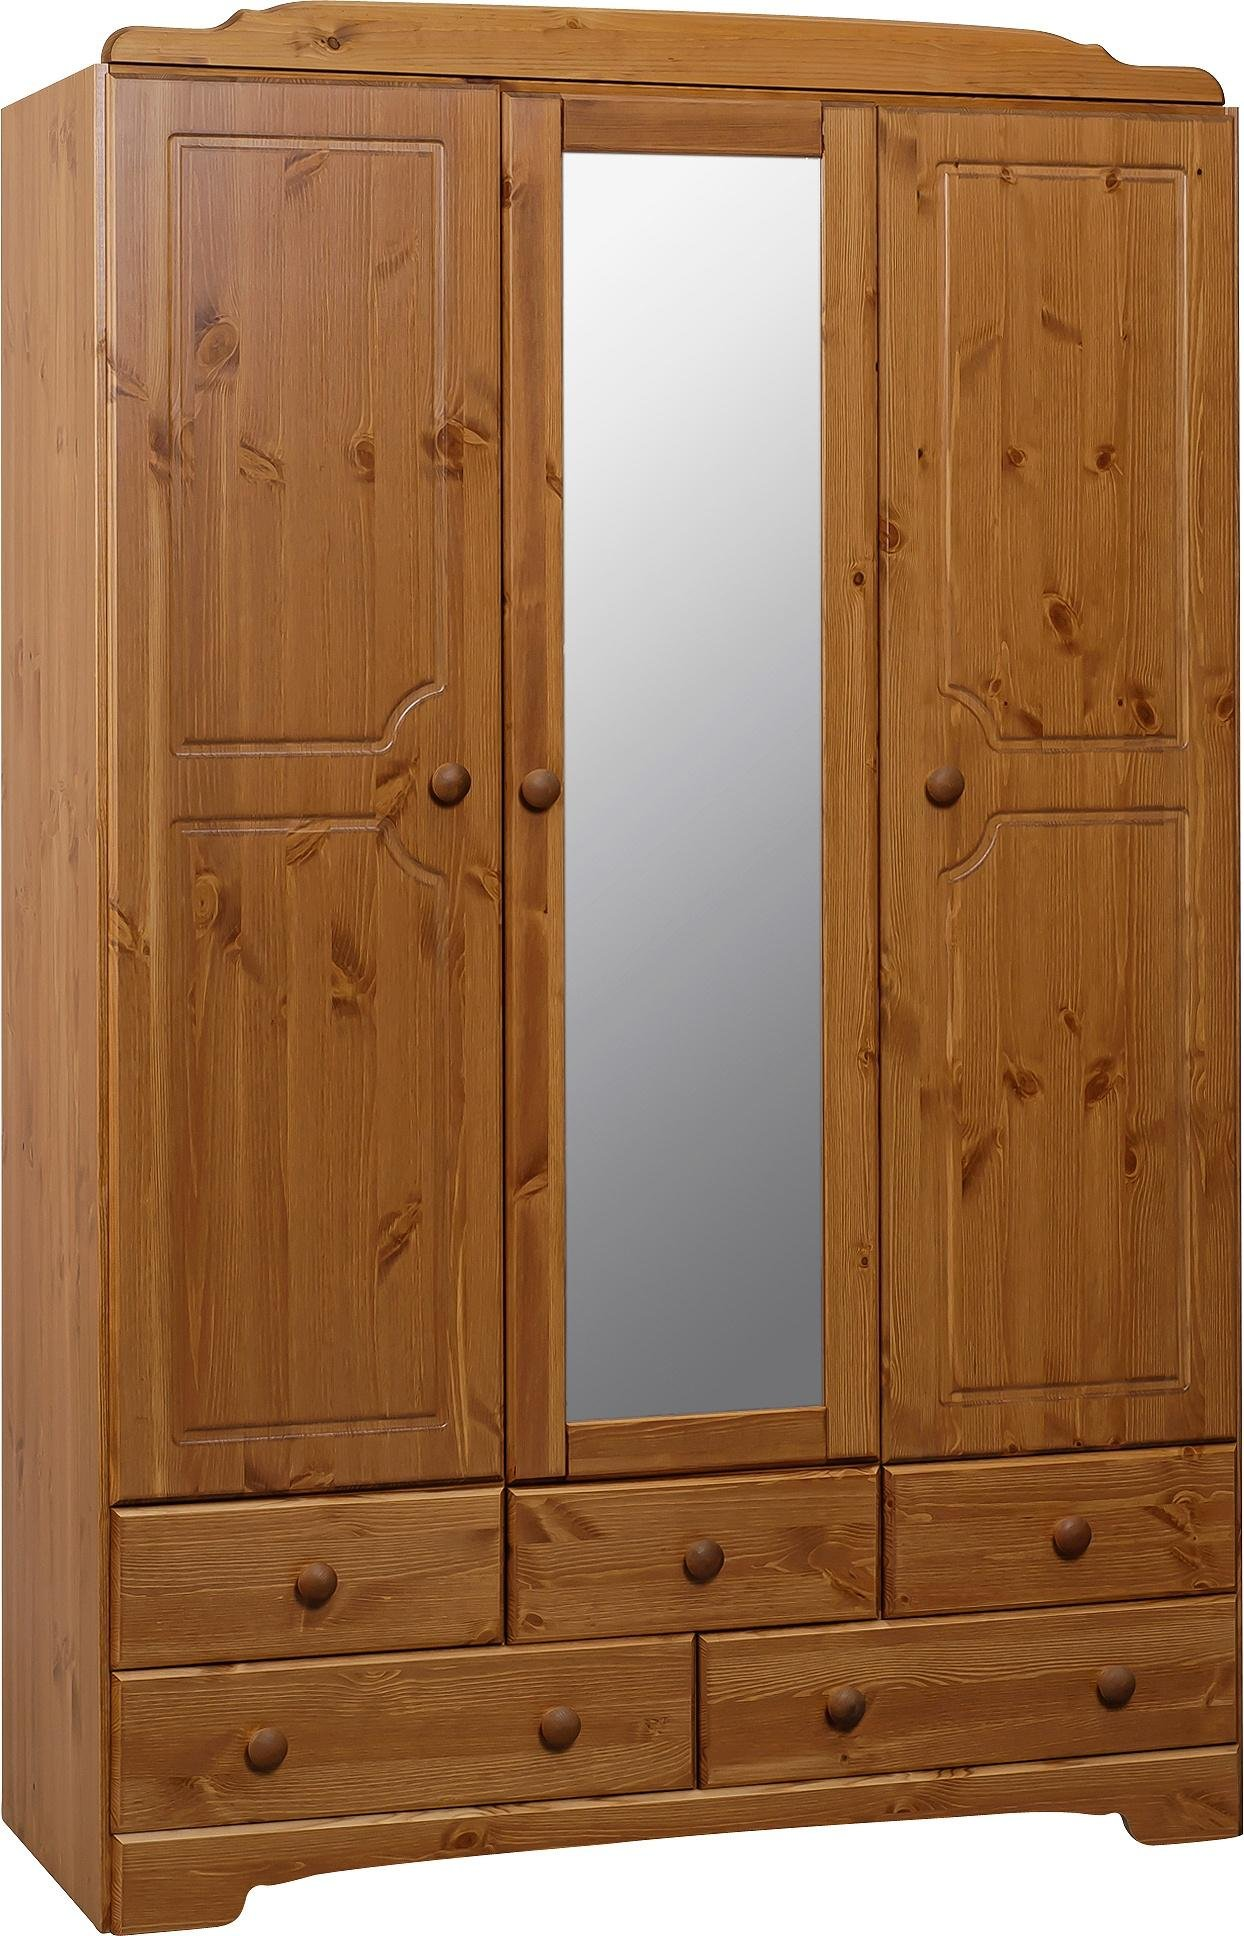 Buy bathroom cabinets at argos co uk your online shop for home and - Buy Home Nordic 3 Door 5 Drawer Mirrored Wardrobe Pine At Argos Co